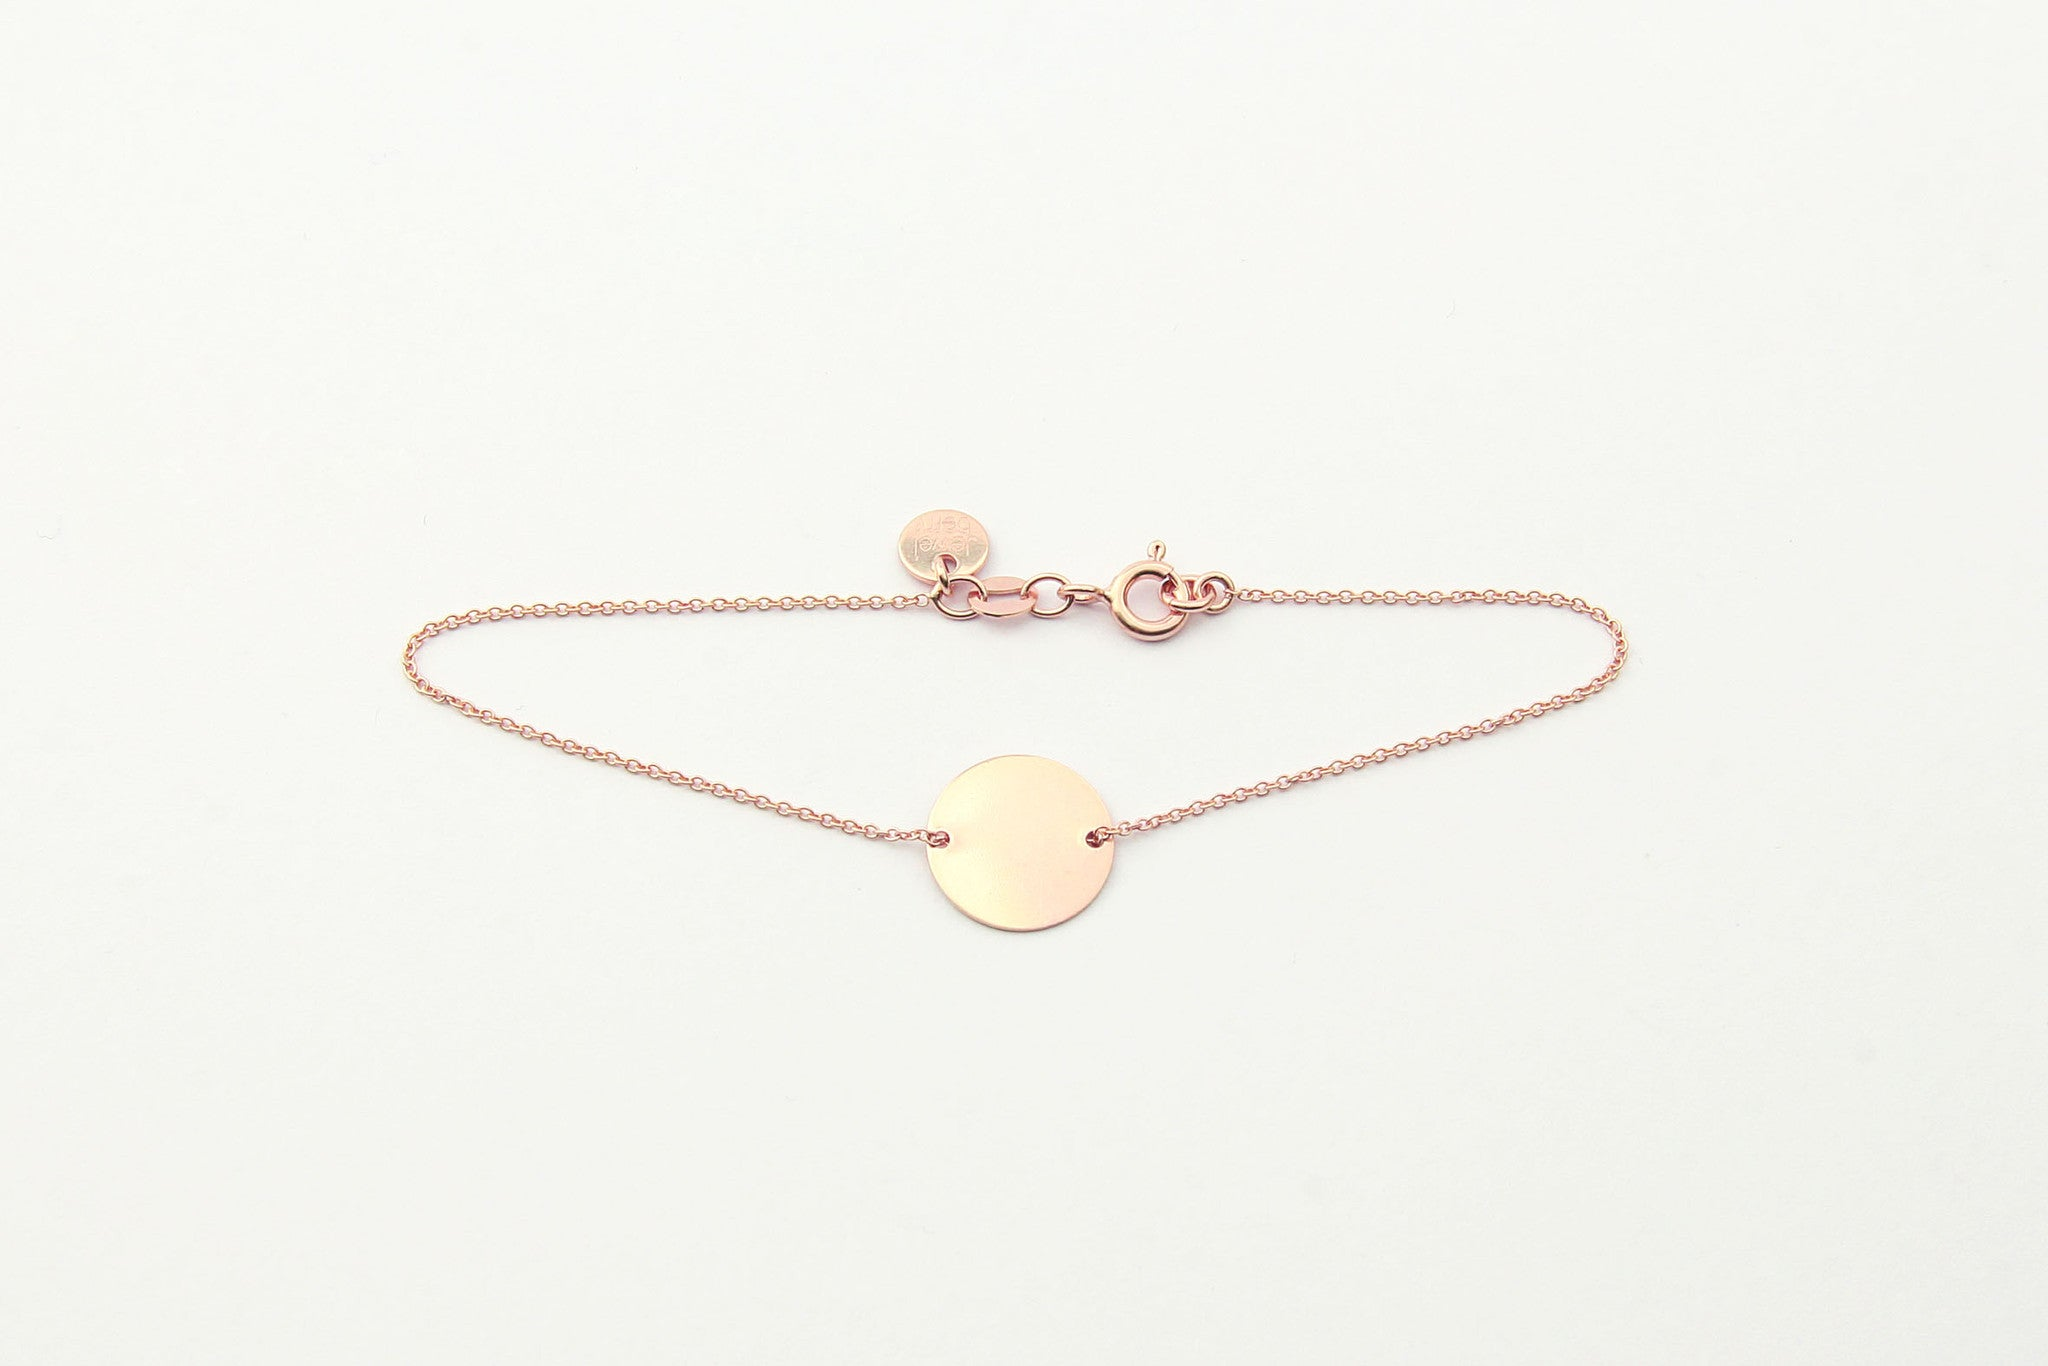 jewelberry armband bracelet medium disc double rose gold plated sterling silver fine jewelry handmade with love fairtrade anchor chain